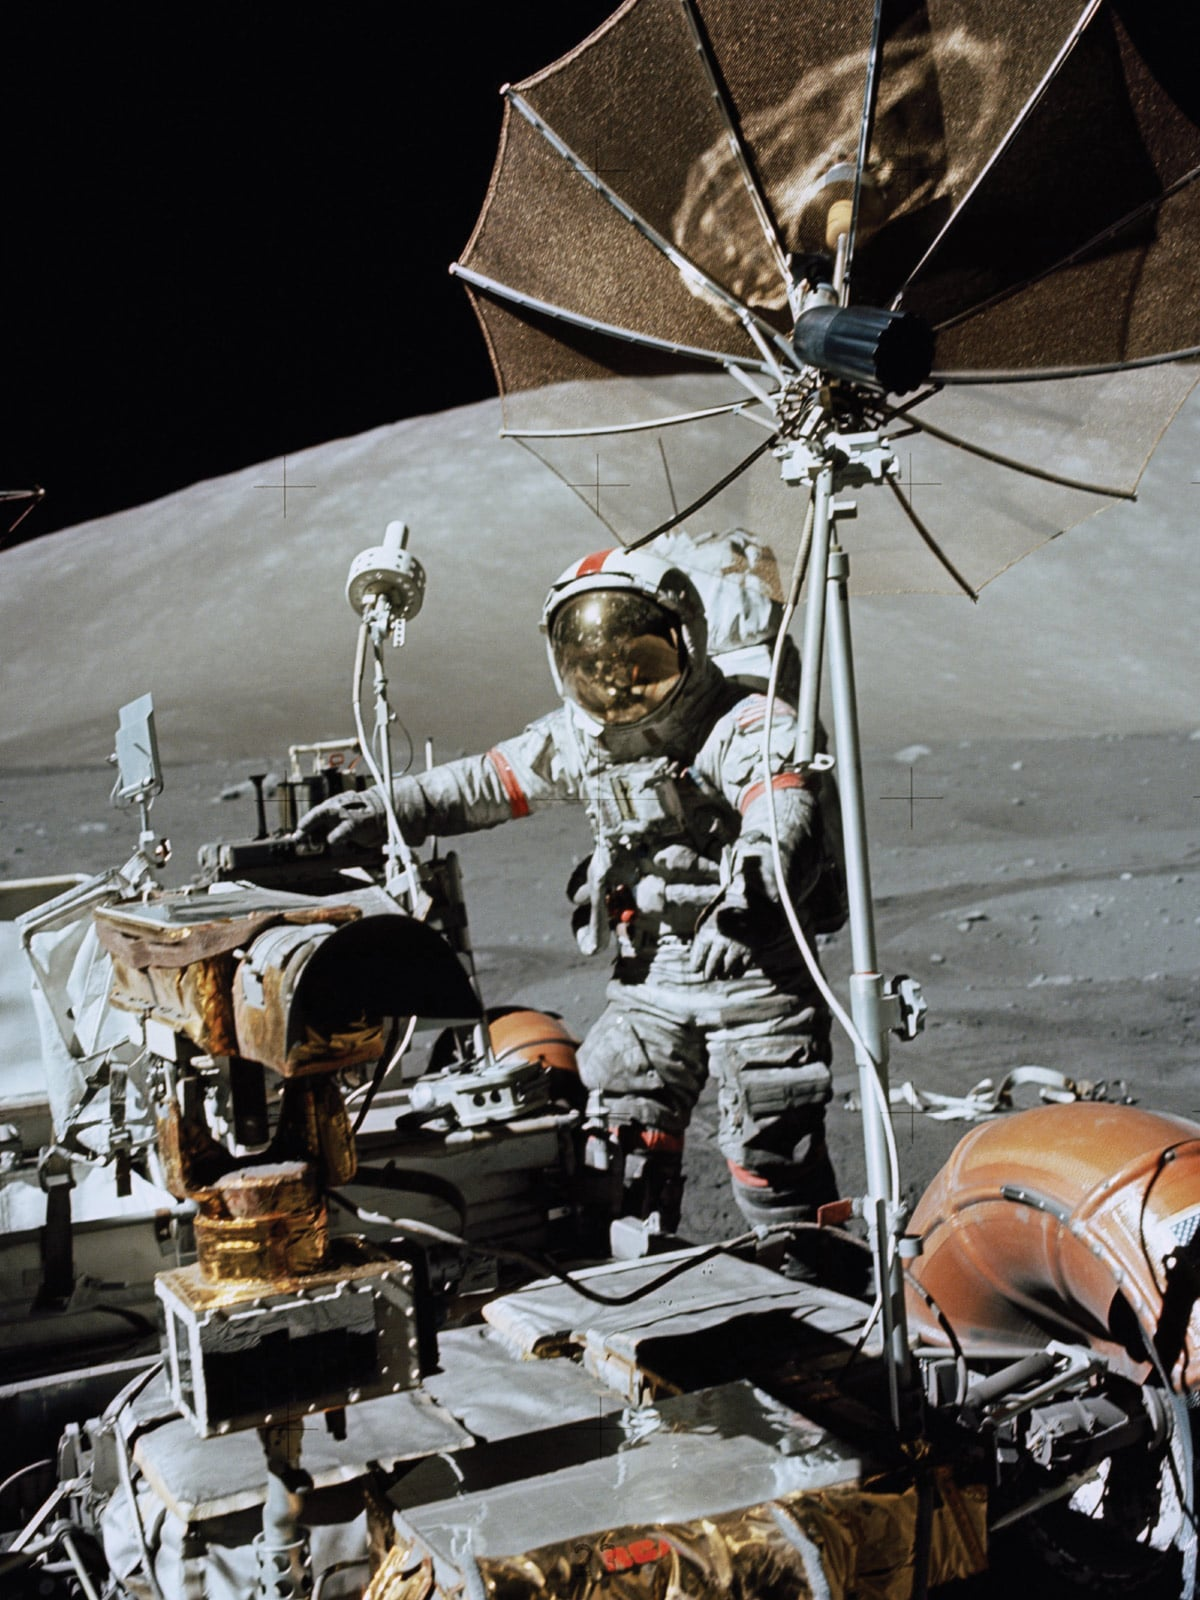 Gene Cernan walking on the Moon next to a lunar vehicle